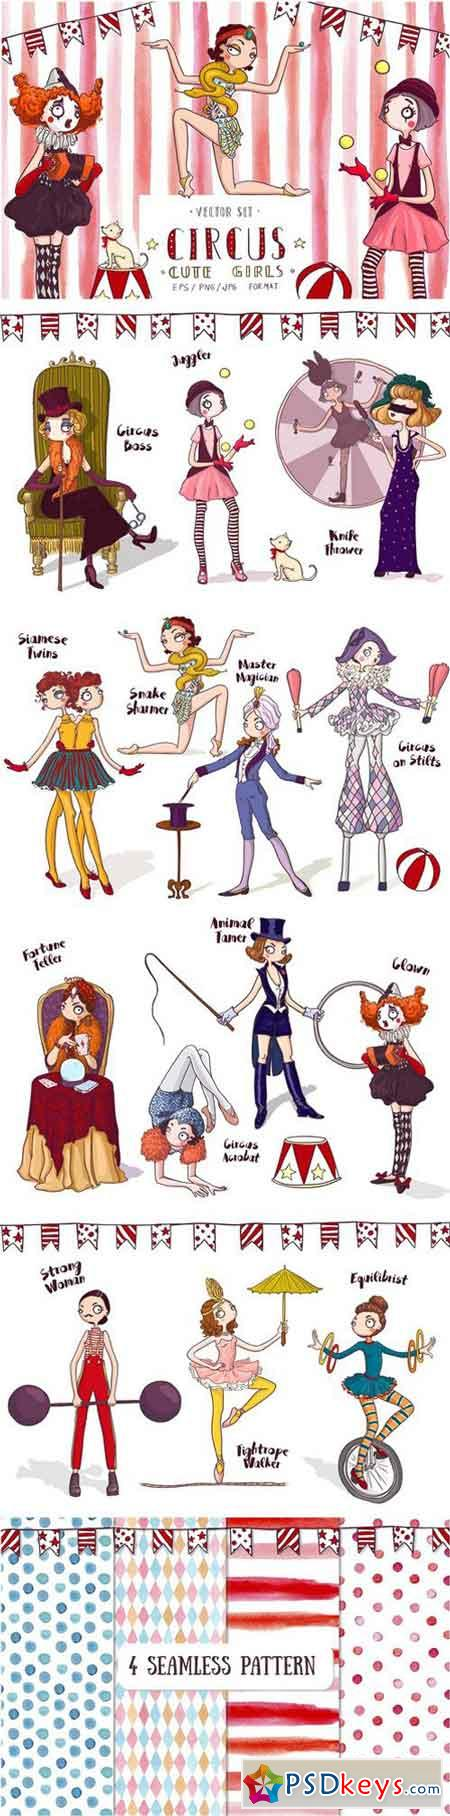 Circus Cute Girls Collection 1597235